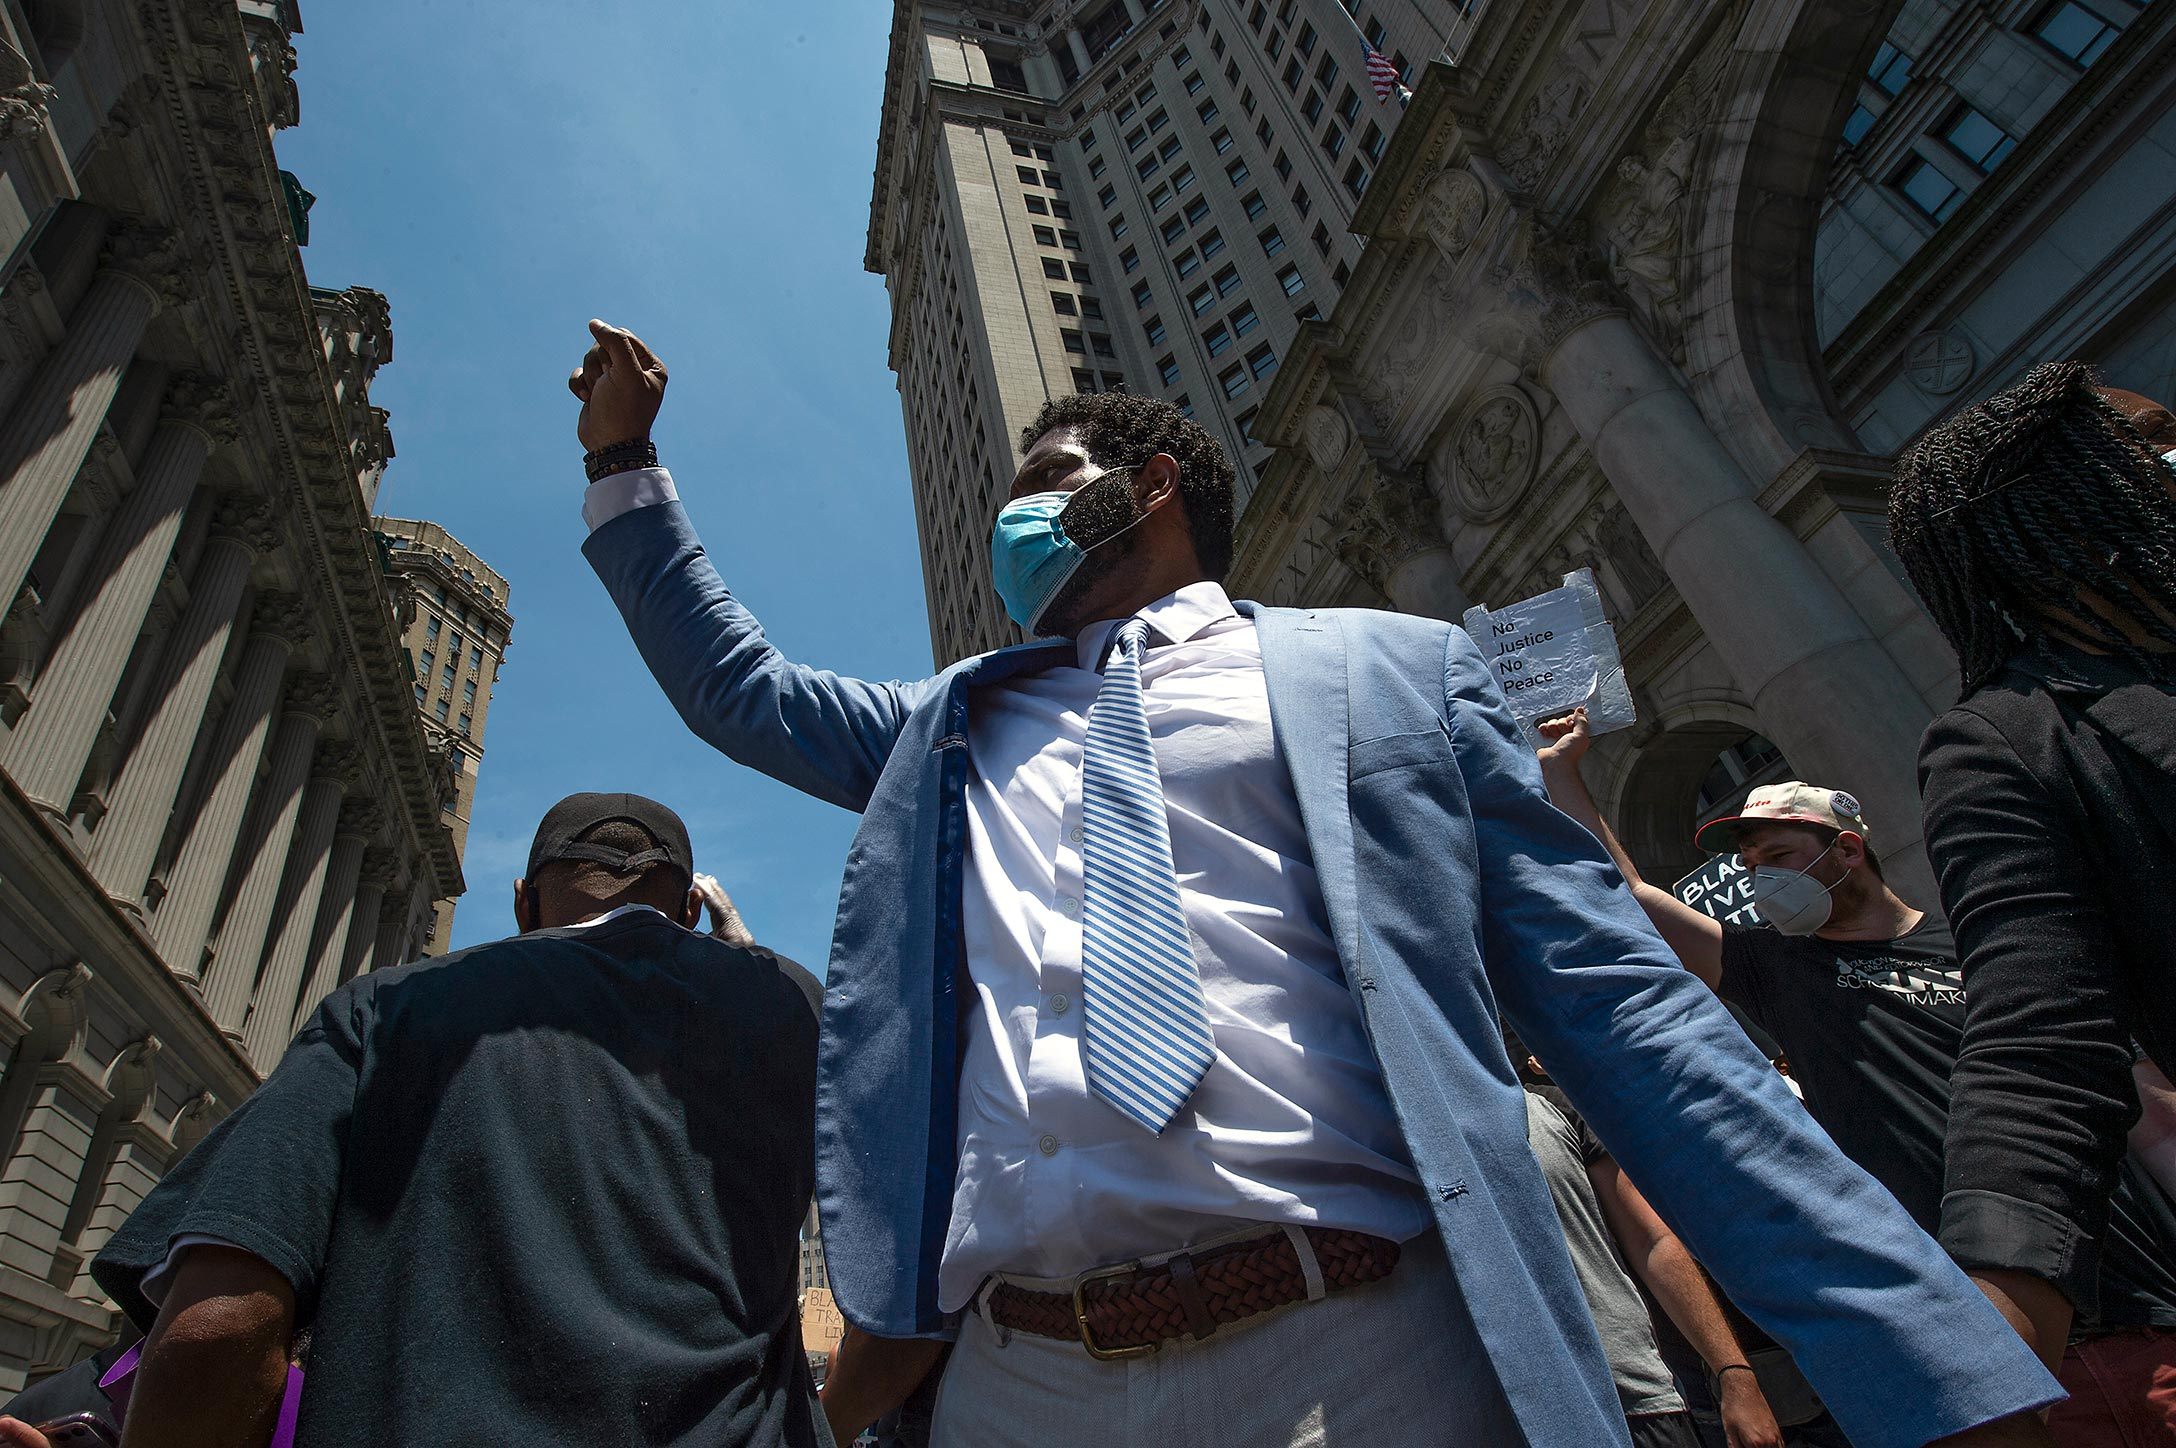 Looking upward we see a man wearing a suit and a face mask taking part in a demonstration. He raises his fist high in the air. Other demonstrators can be seen holding signs.